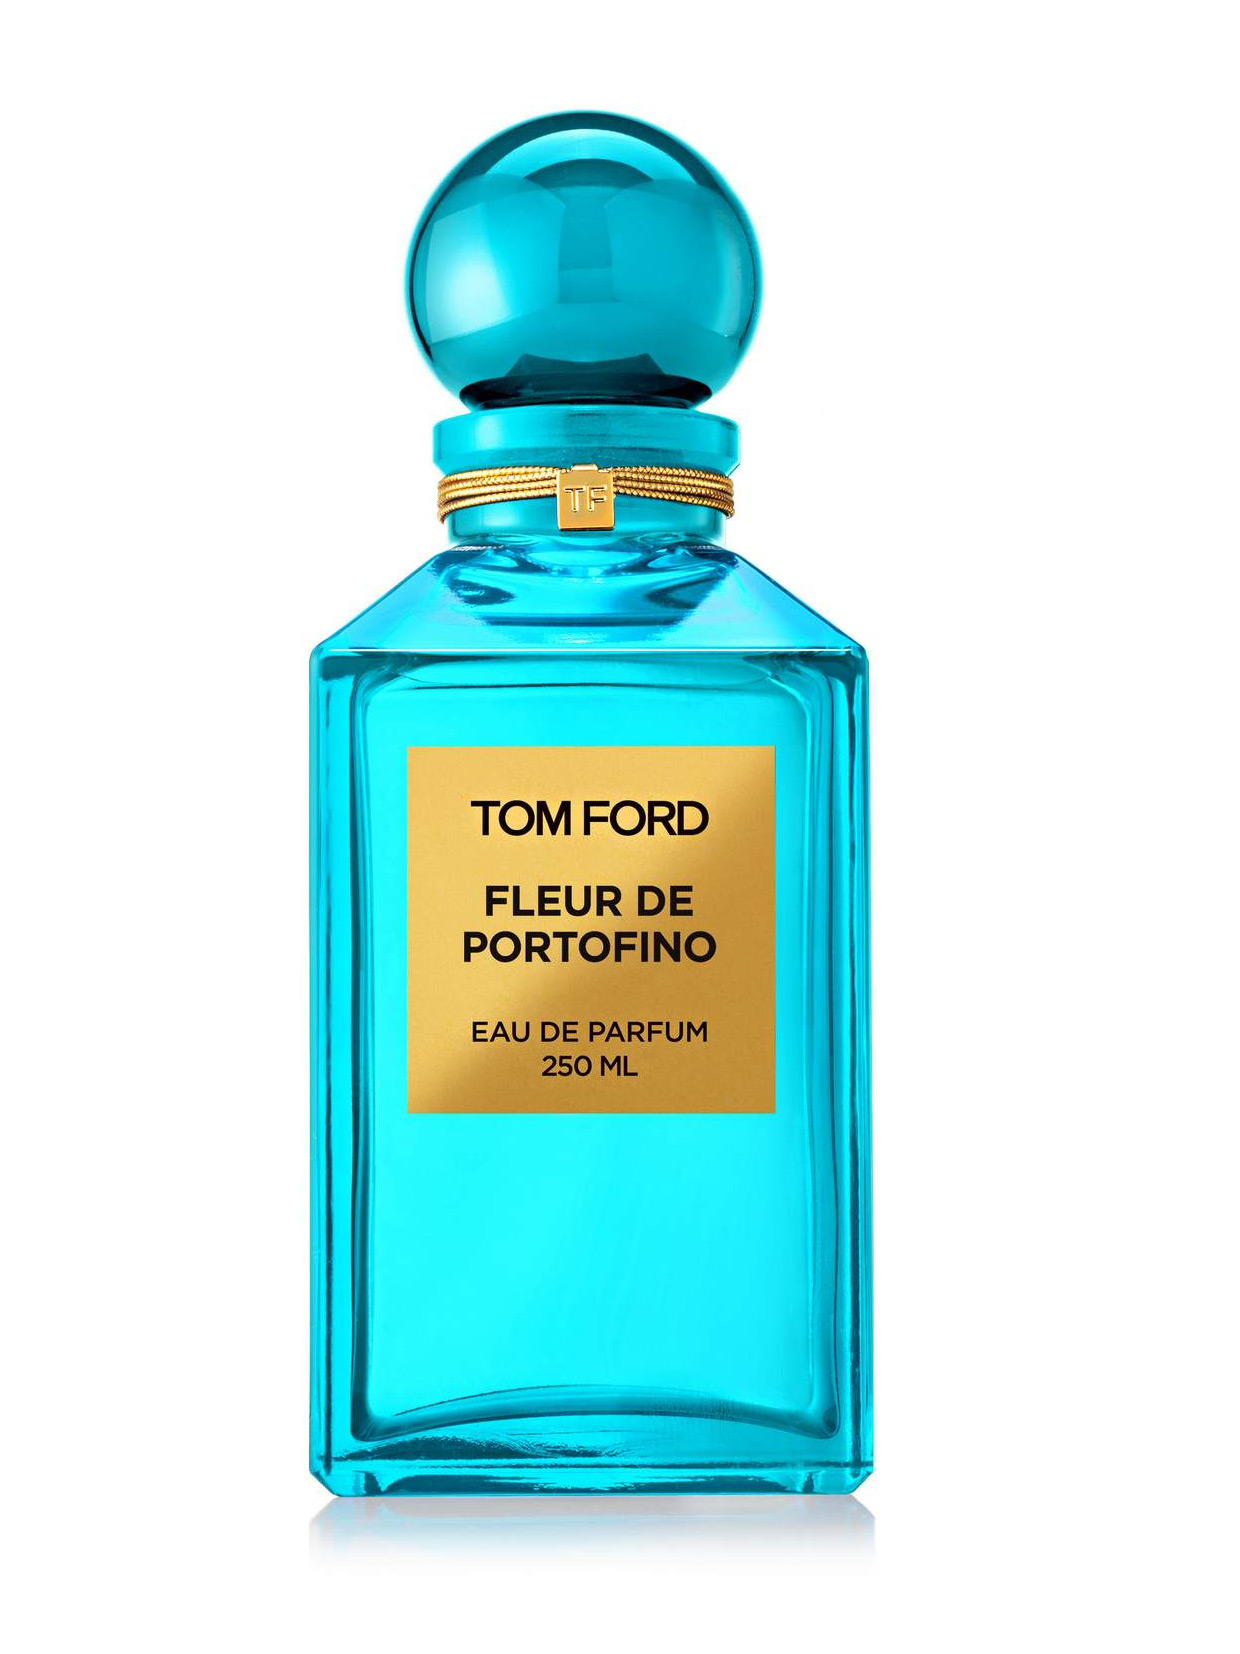 fleur de portofino tom ford perfume a new fragrance for. Black Bedroom Furniture Sets. Home Design Ideas